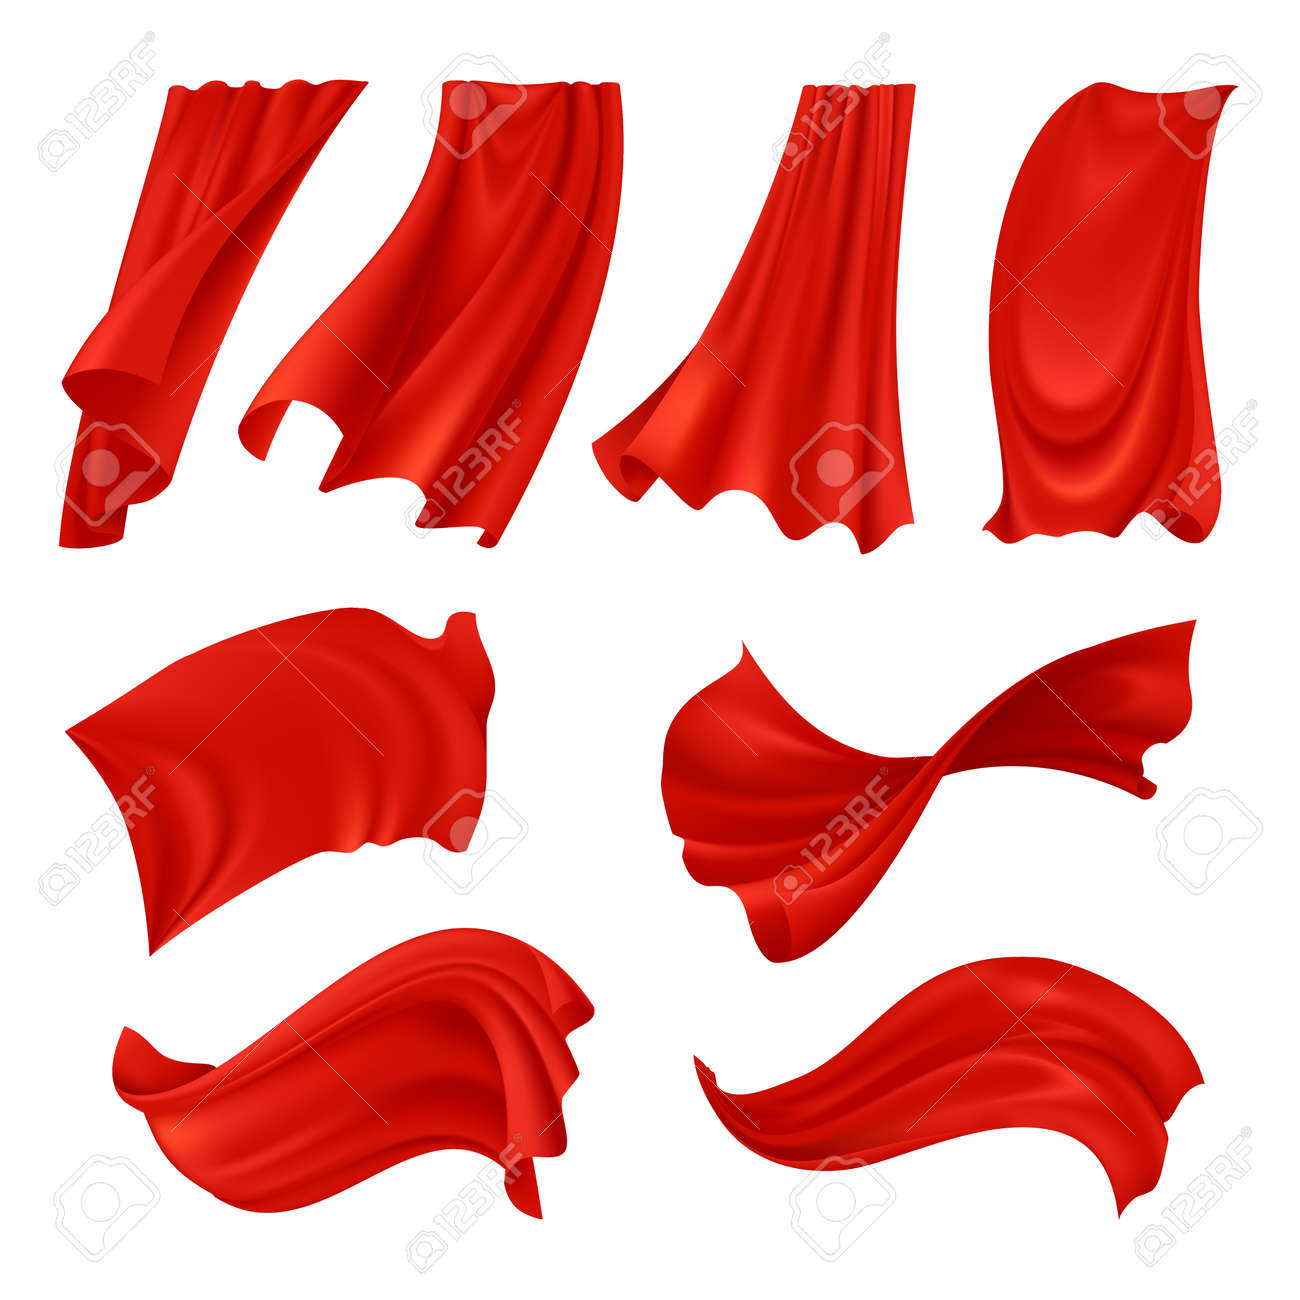 Realistic billowing red cloth set of fabrics in various positions isolated on white background vector illustration - 165884944